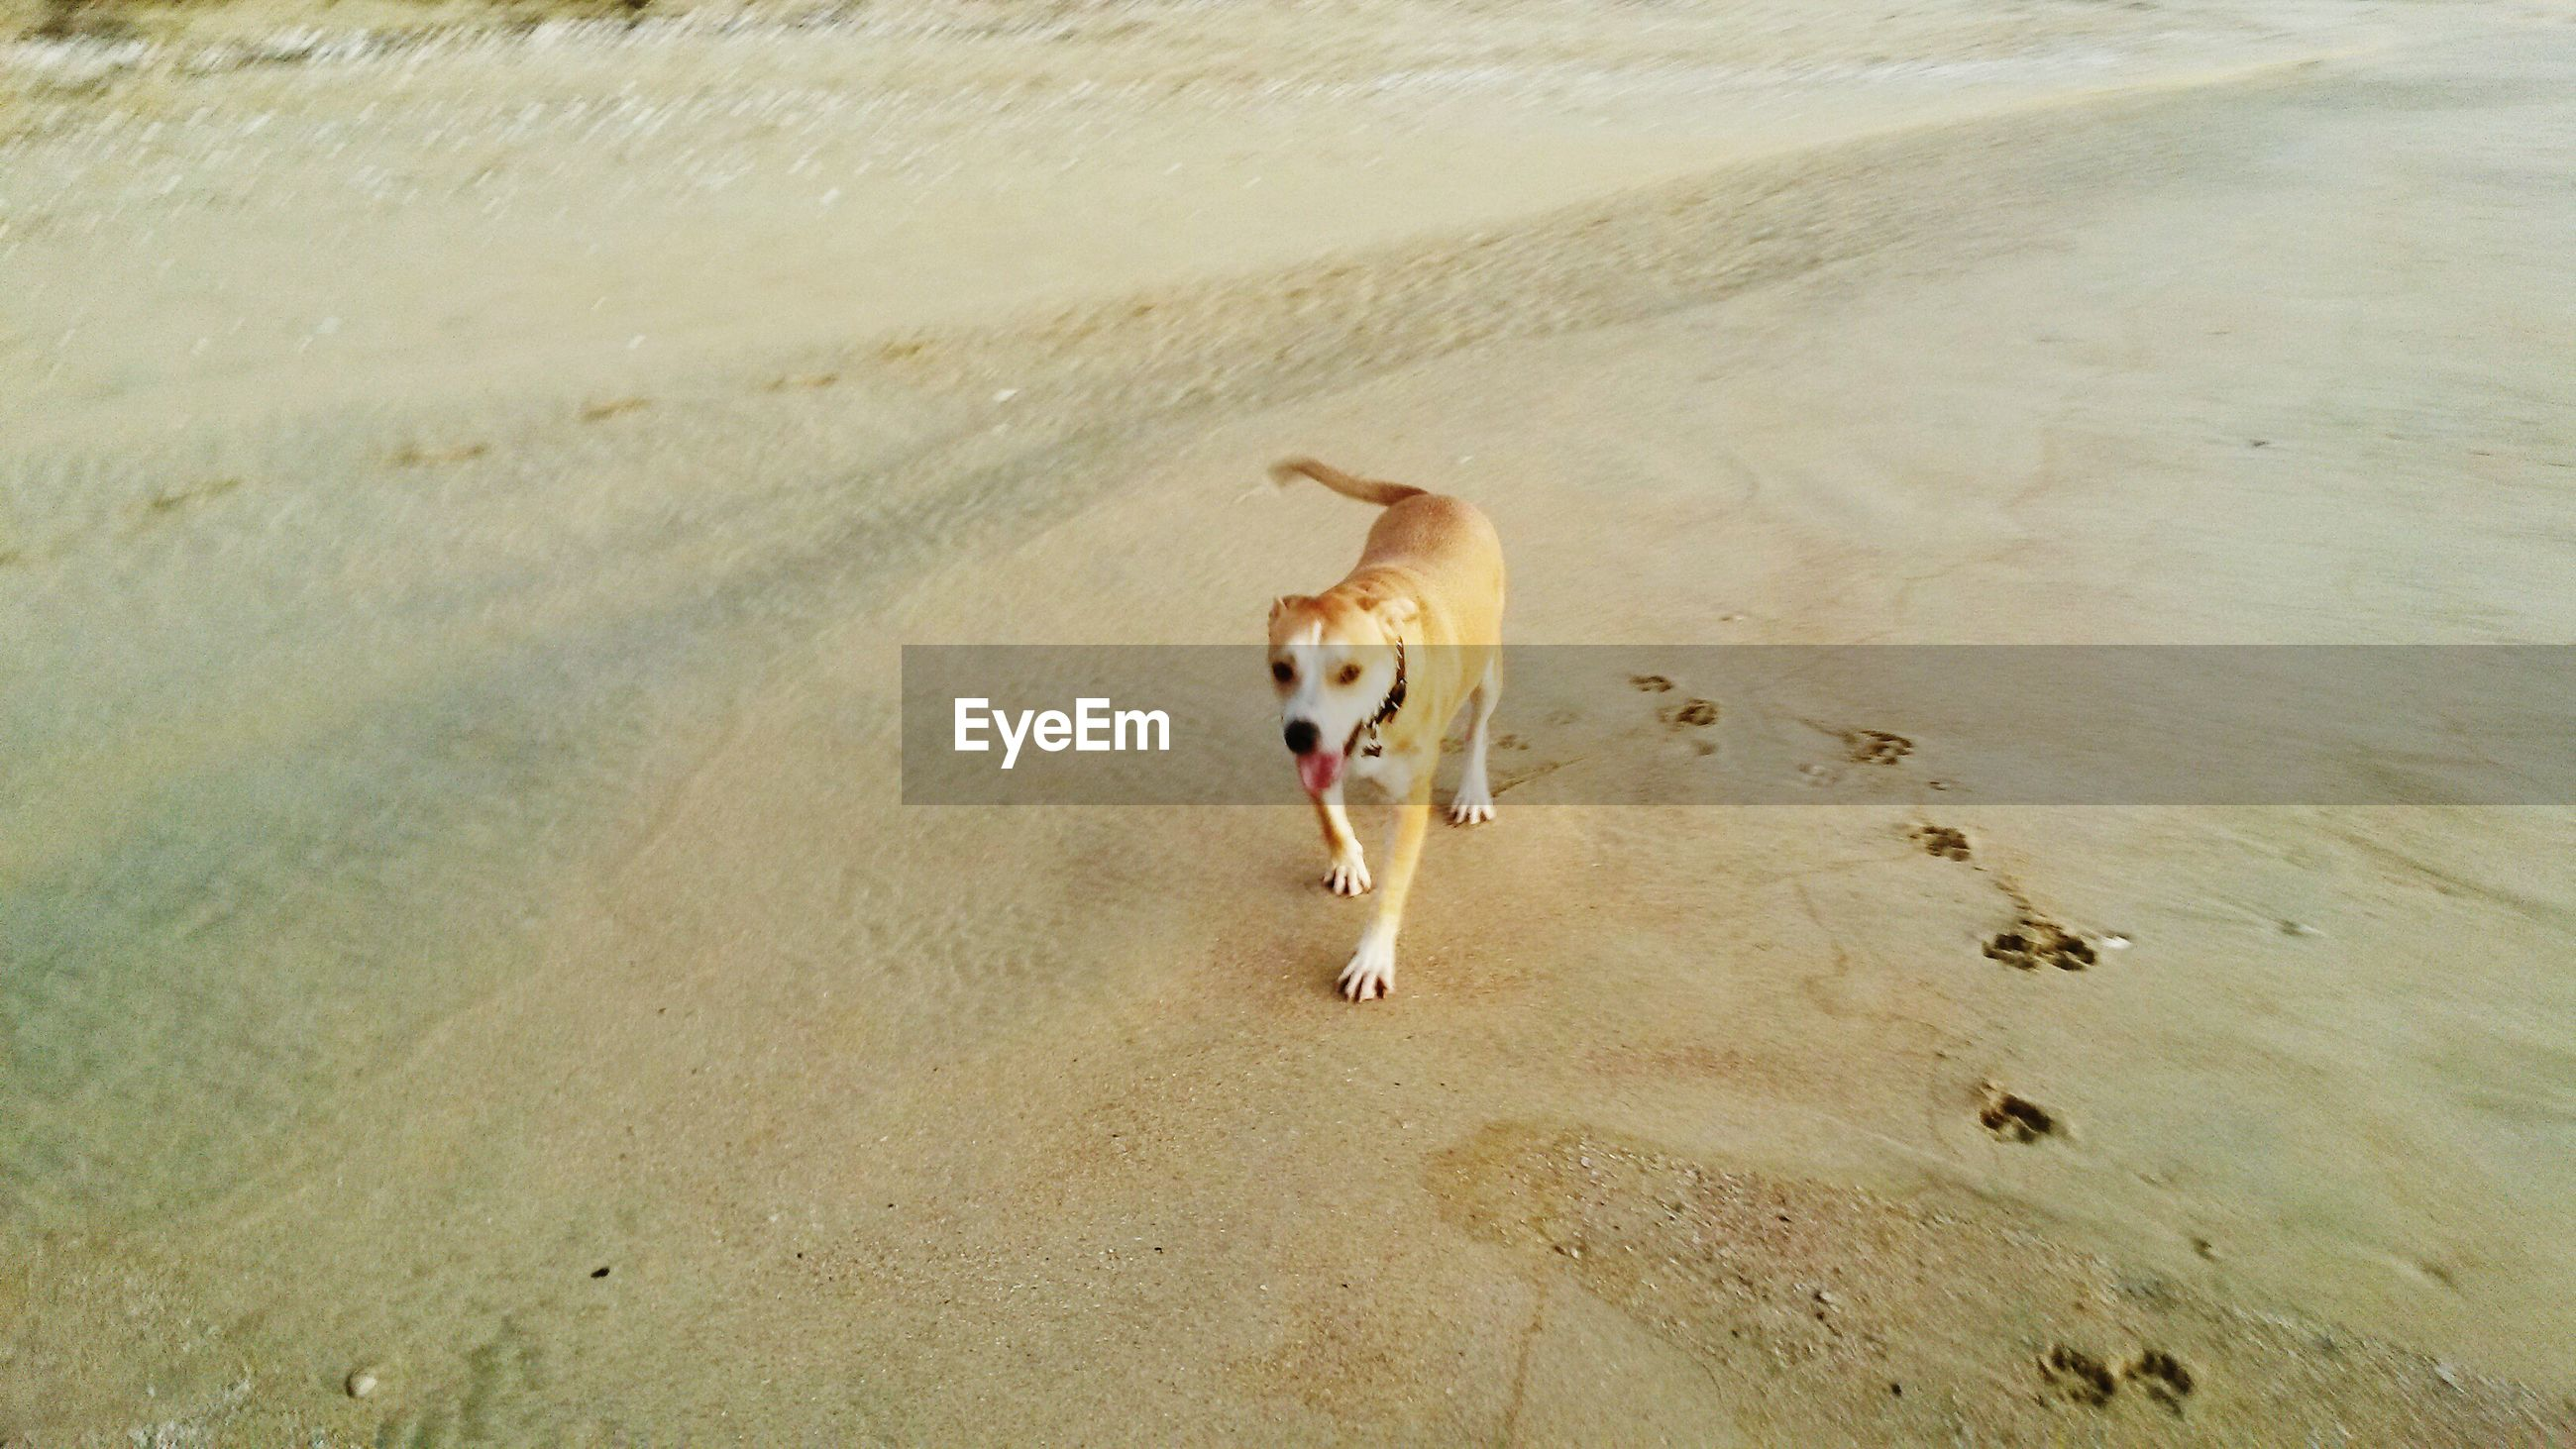 animal themes, one animal, domestic animals, mammal, high angle view, sand, pets, full length, animals in the wild, wildlife, beach, young animal, dog, zoology, bird, nature, no people, day, outdoors, white color